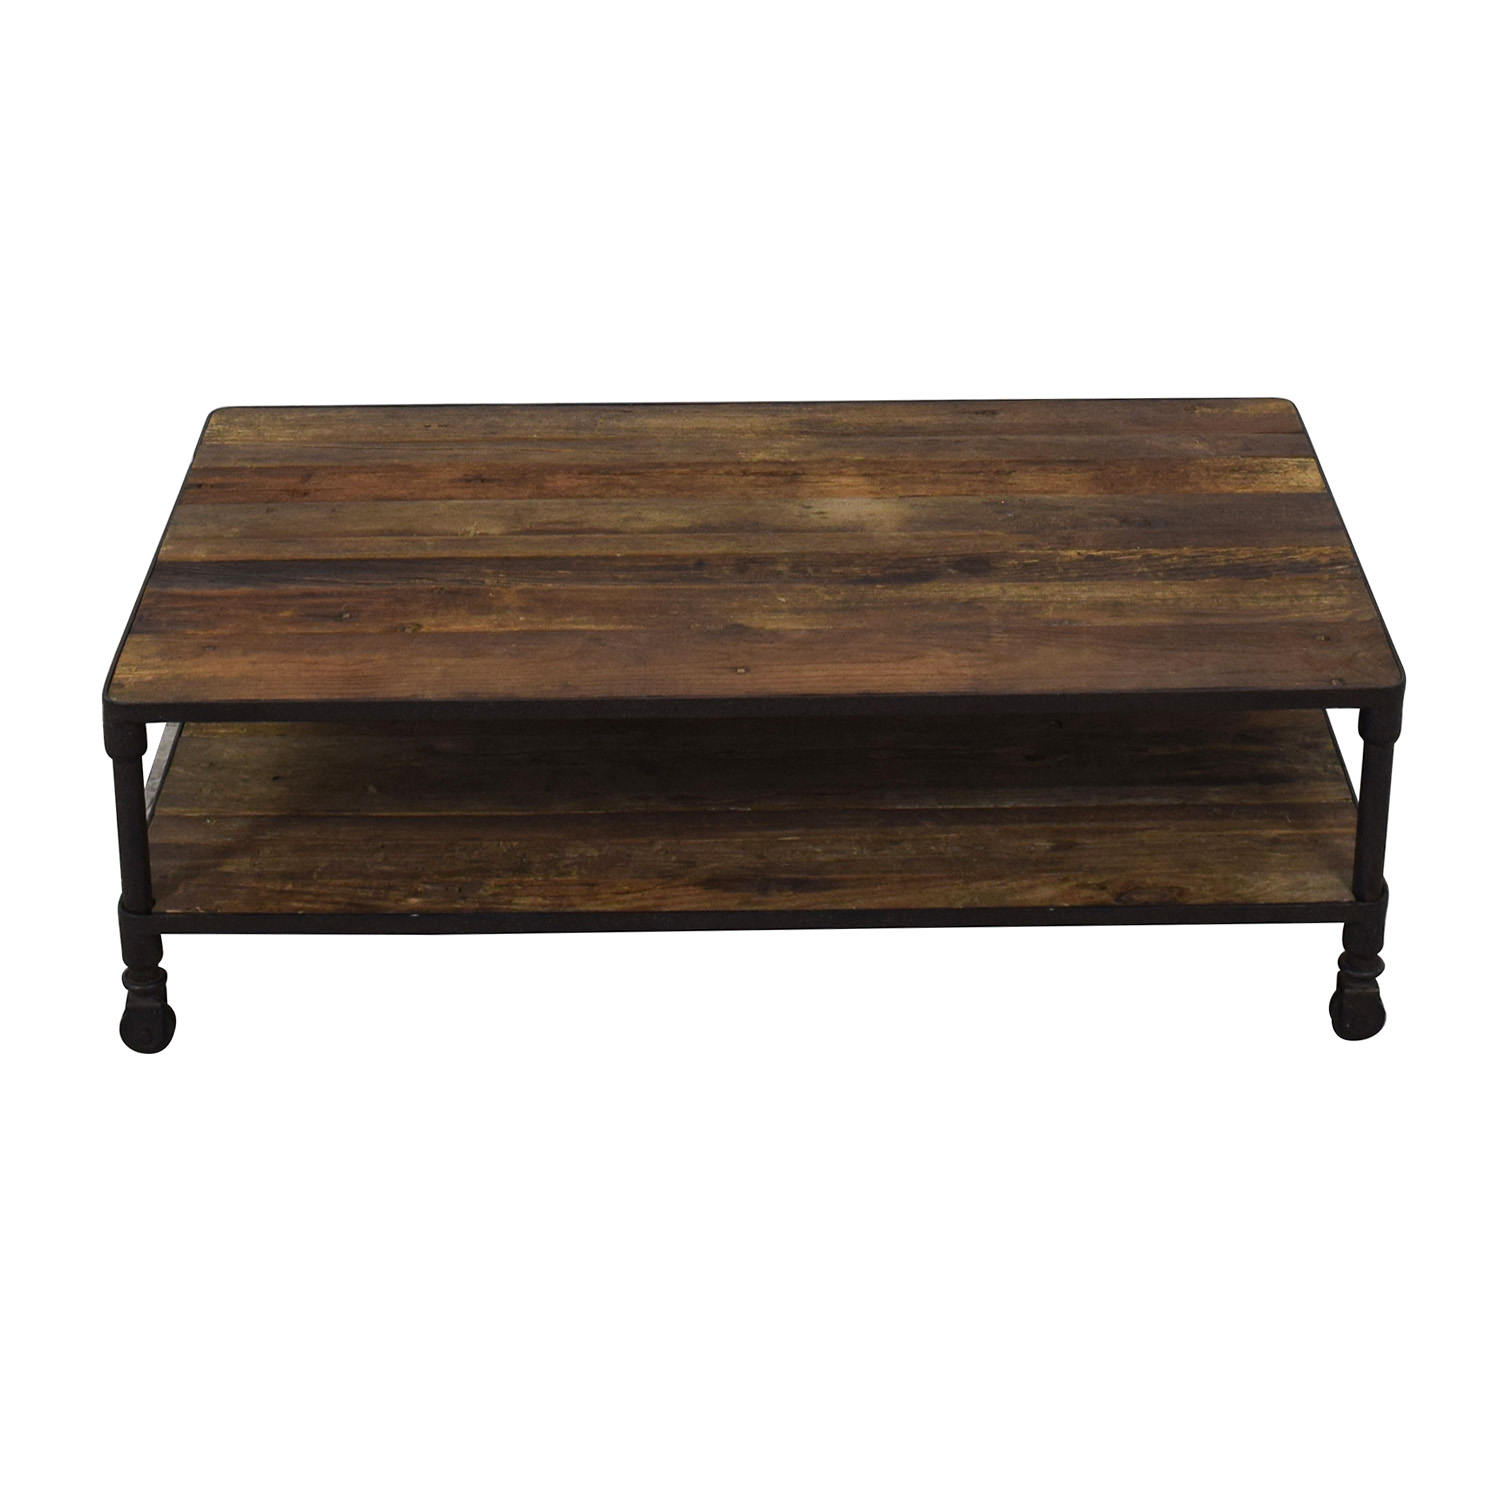 Restoration Hardware Restoration Hardware Dutch Industrial Coffee Table price